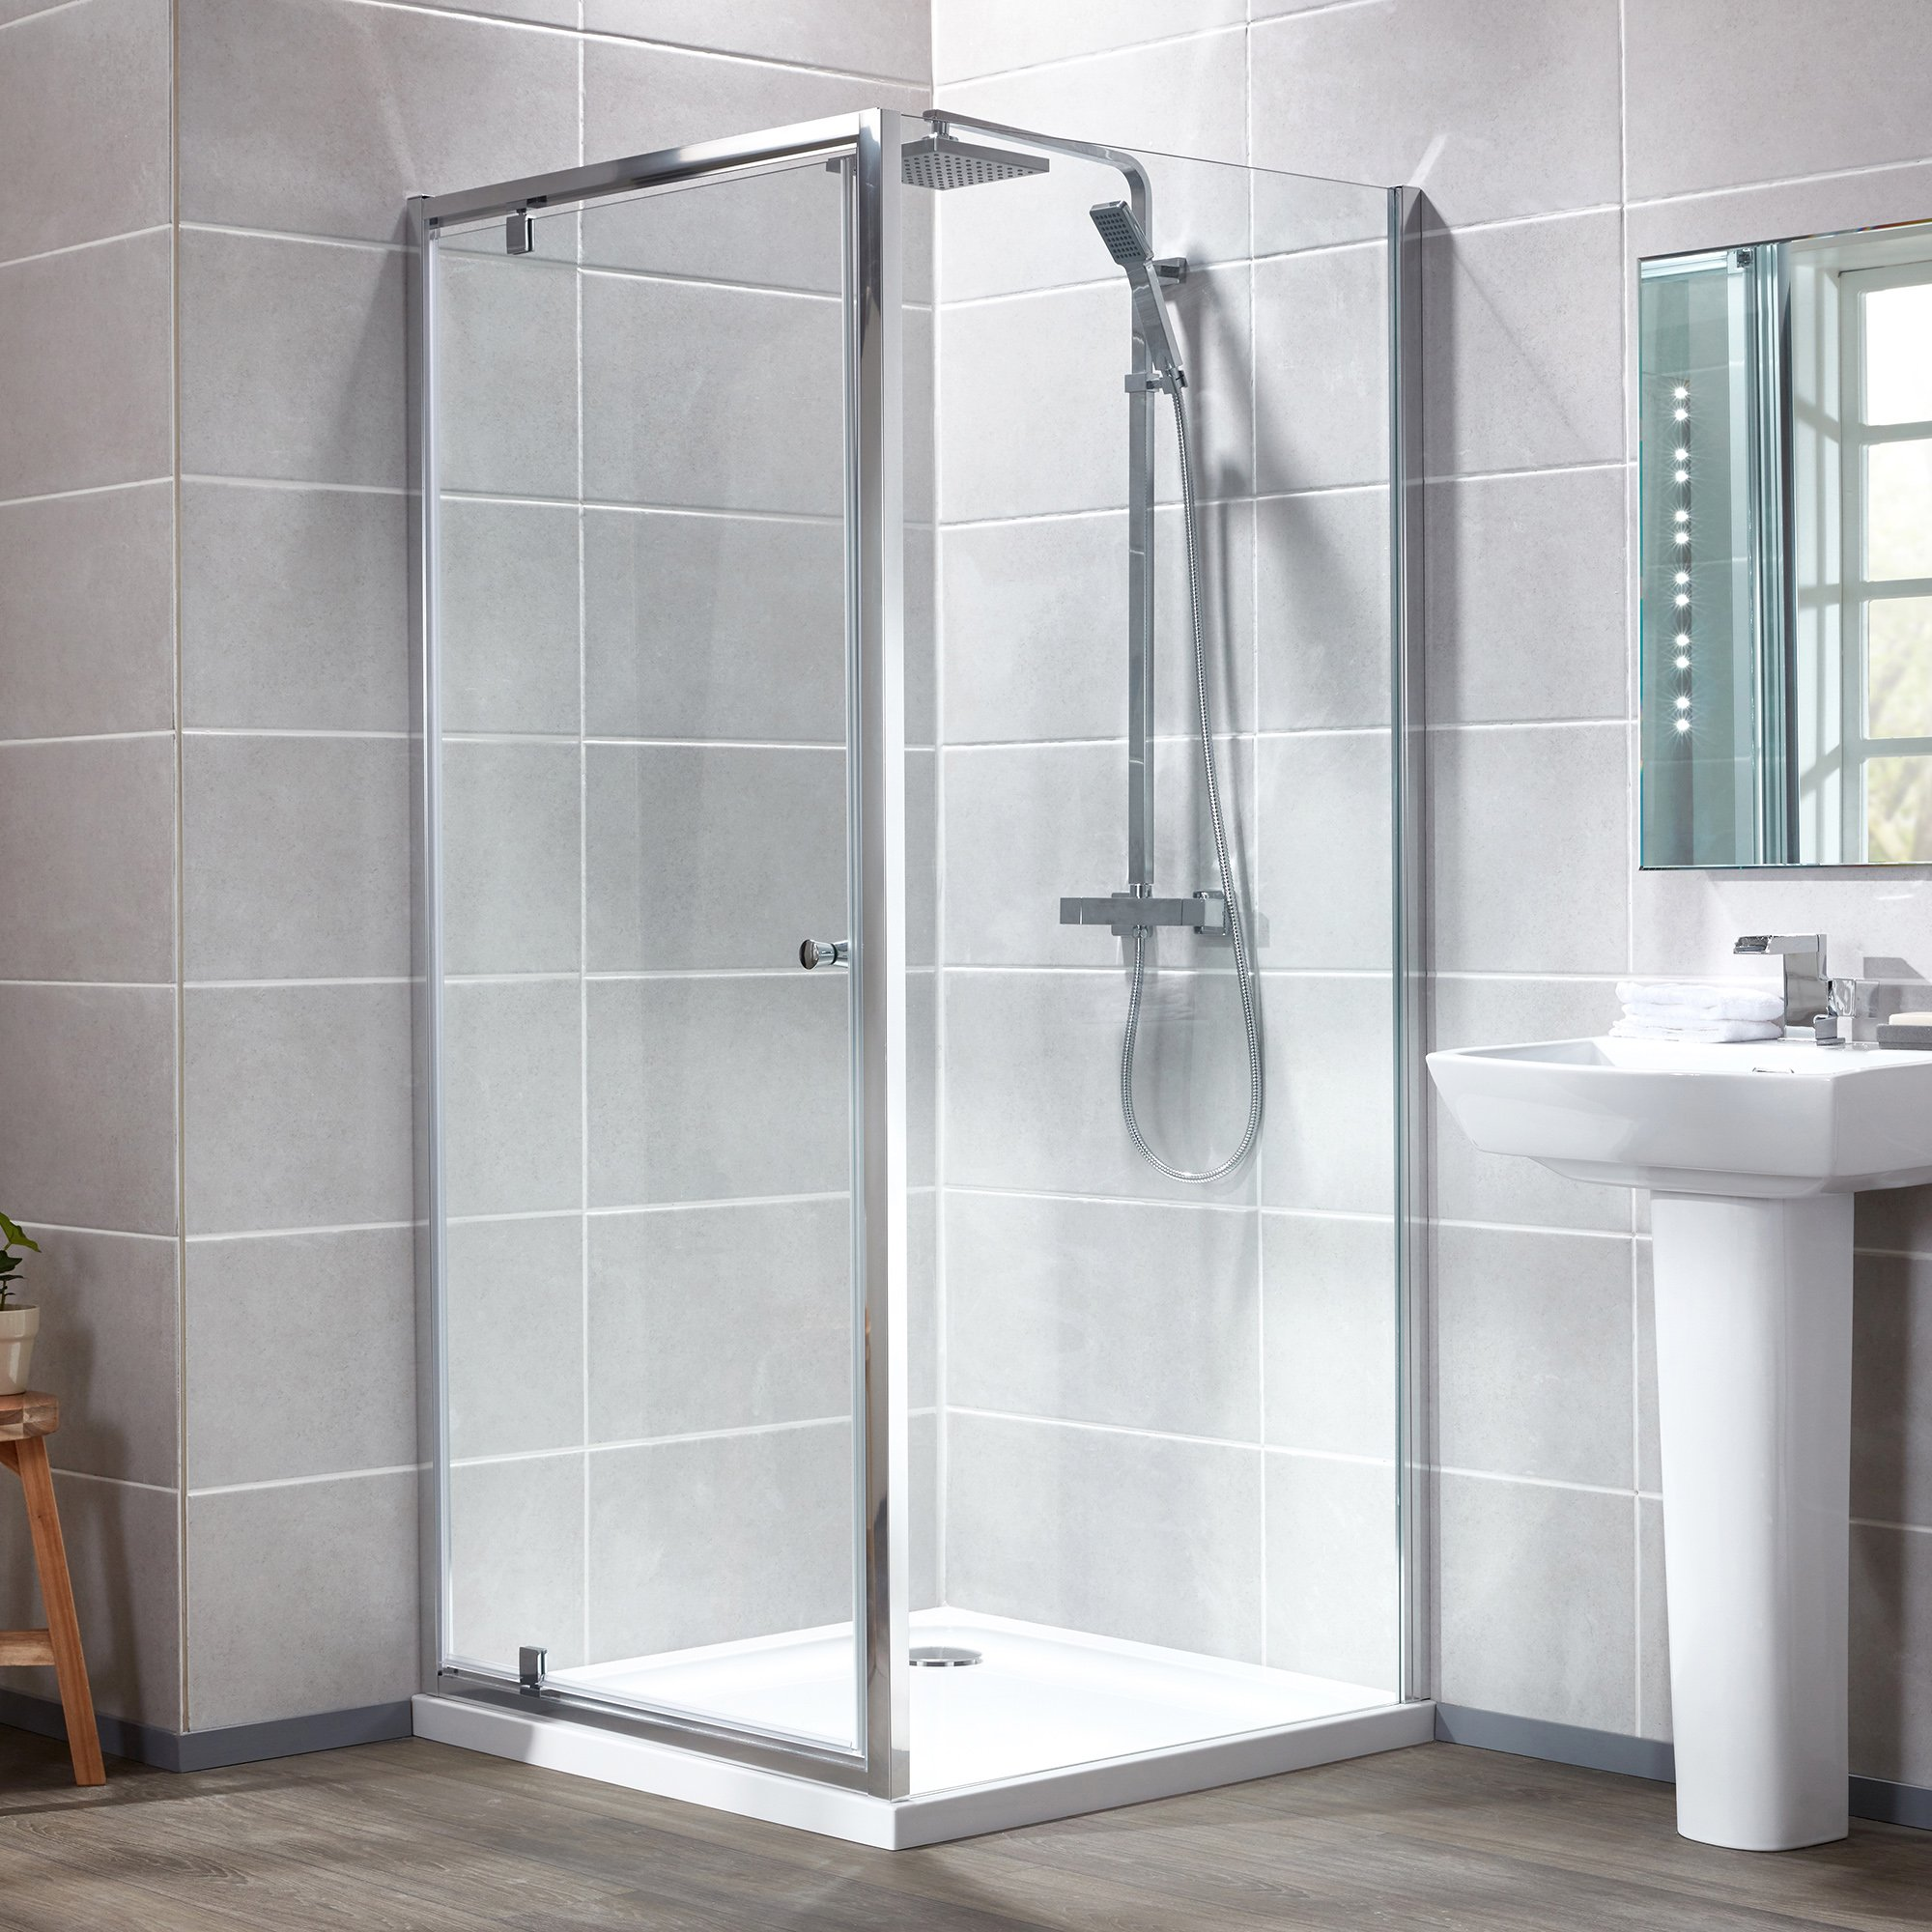 Pivot Door & Shower Tray - Bathroom Cladding Direct